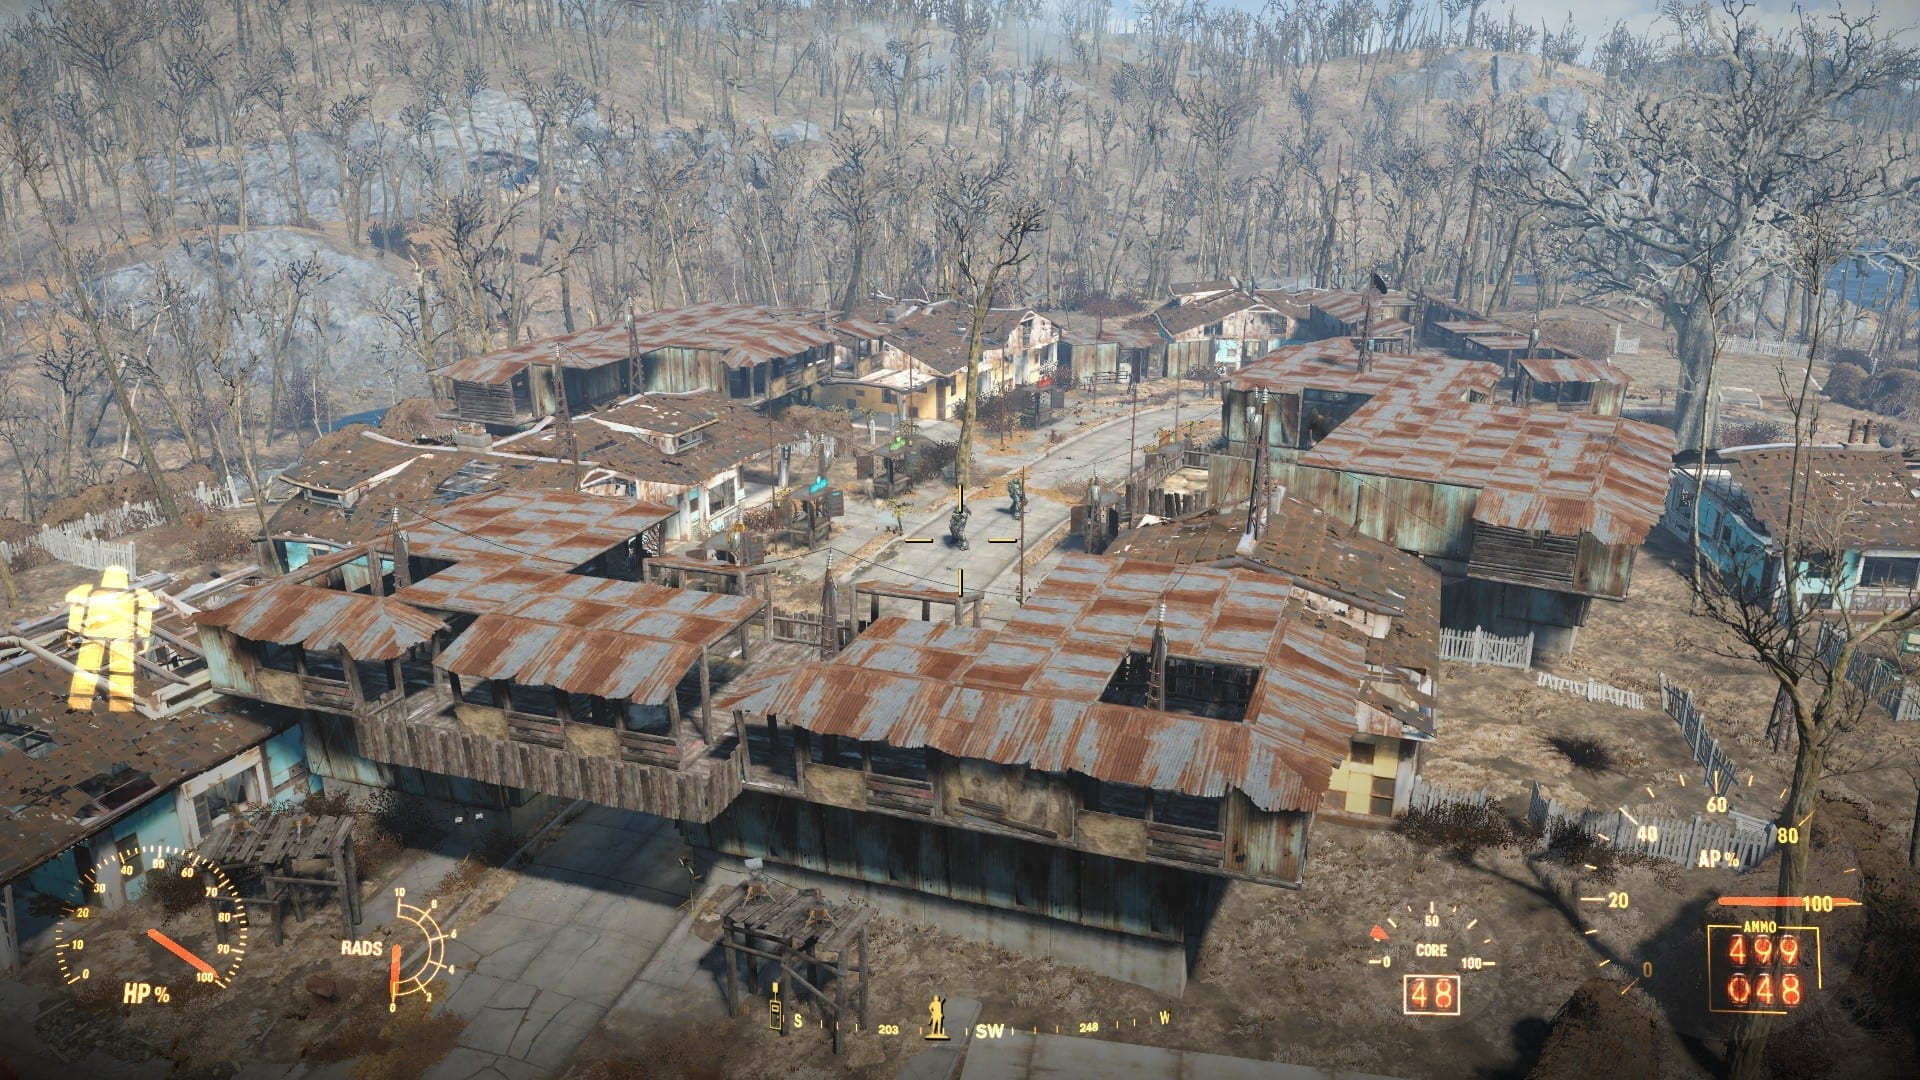 Hilarious Shanty Town By Jarvvski Most Fallout Settlements Ever Made Gamebyte Fallout 4 Diamond City House Ideas Fallout 4 Sanctuary House Ideas curbed Fallout 4 House Ideas